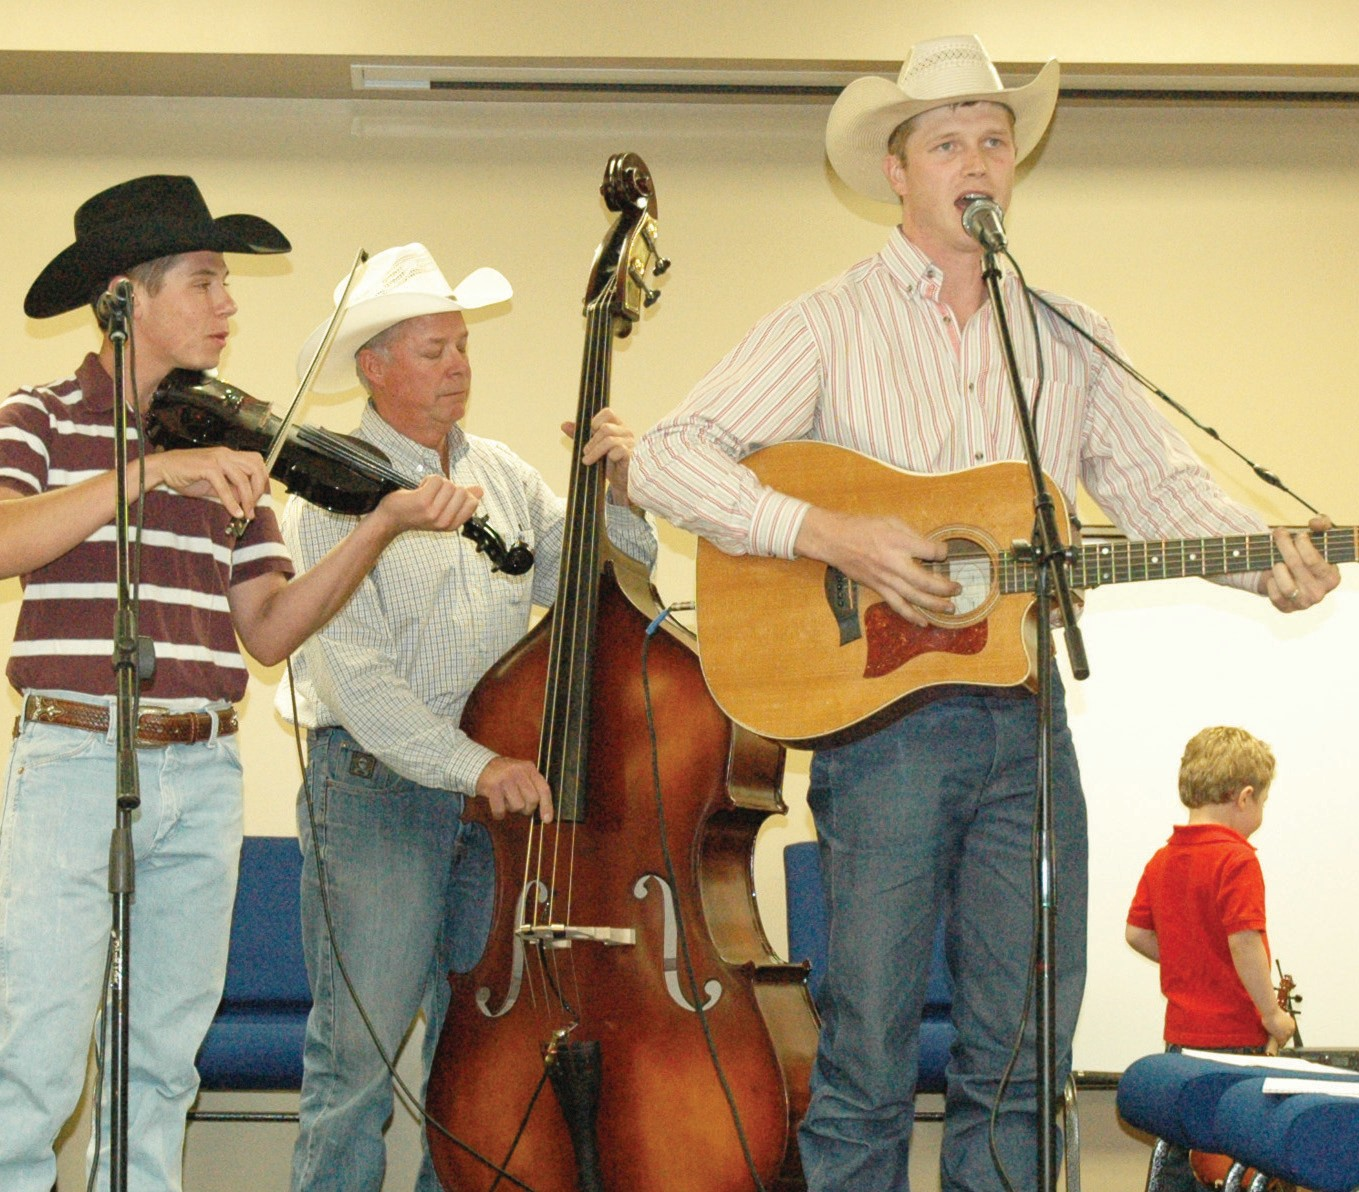 Entertainment for the return of the Taste of Atascosa will be provided by Wade Hill, Toby Hill and Brian Anderson. Set for tomorrow, Thursday, June 26, area businesses will feature their signature dishes to be sampled throughout the evening. Sponsored by the Pleasanton Chamber of Commerce, the event begins at 6 p.m. and will also feature live and silent auctions. It will be held at the Pleasanton Civic Center, 115 N. Main Street. Tickets are $10 for adults and $5 for children under 10.